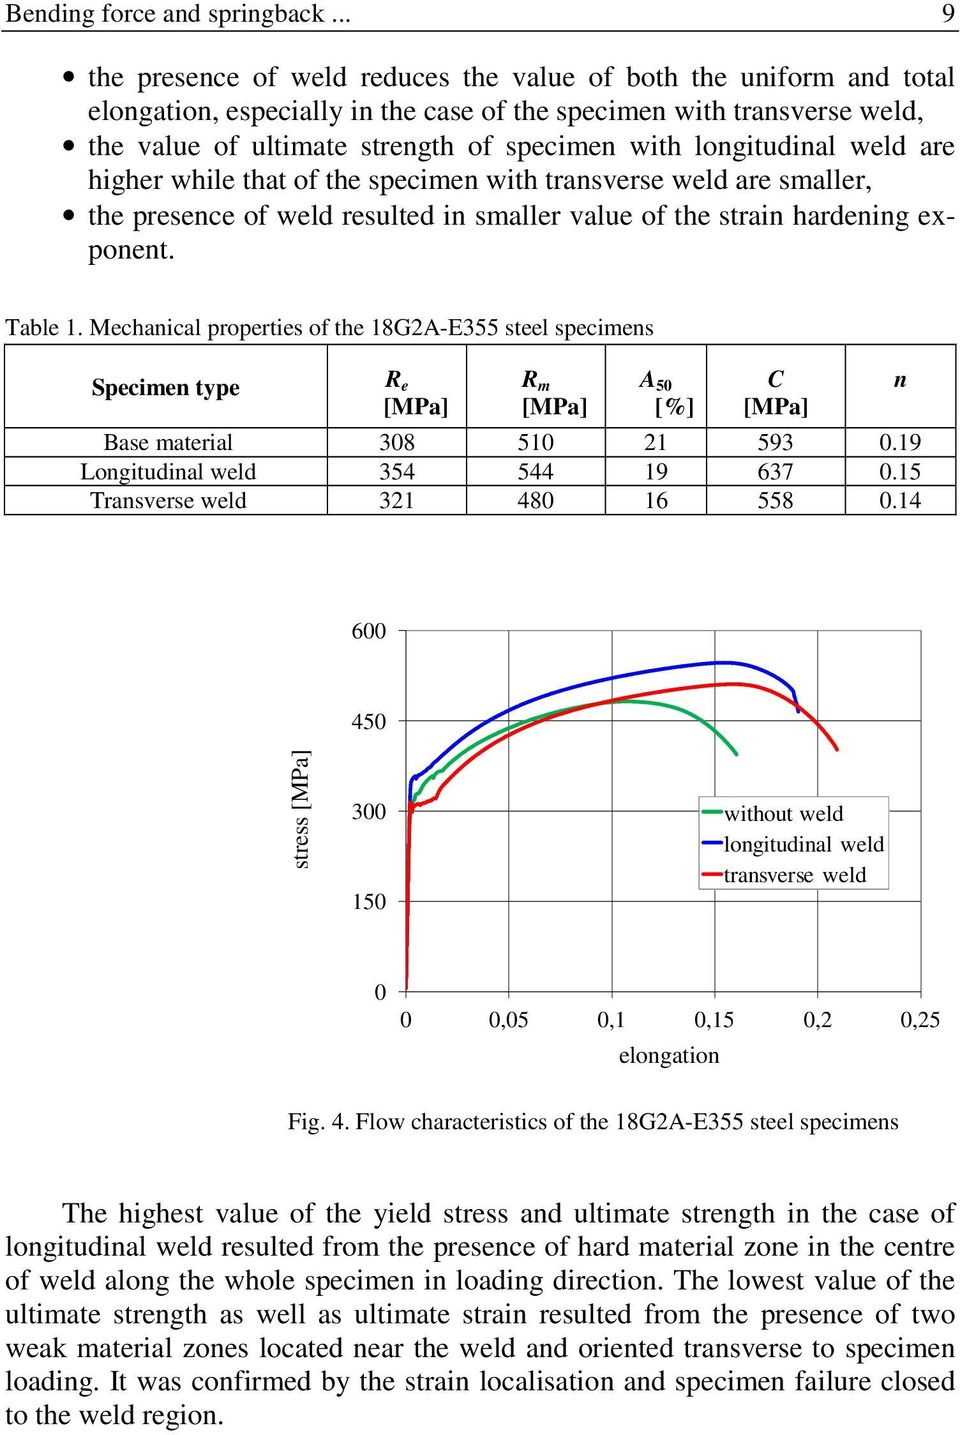 longitudinal weld are higher while that of the specimen with transverse weld are smaller, the presence of weld resulted in smaller value of the strain hardening exponent. Table 1.